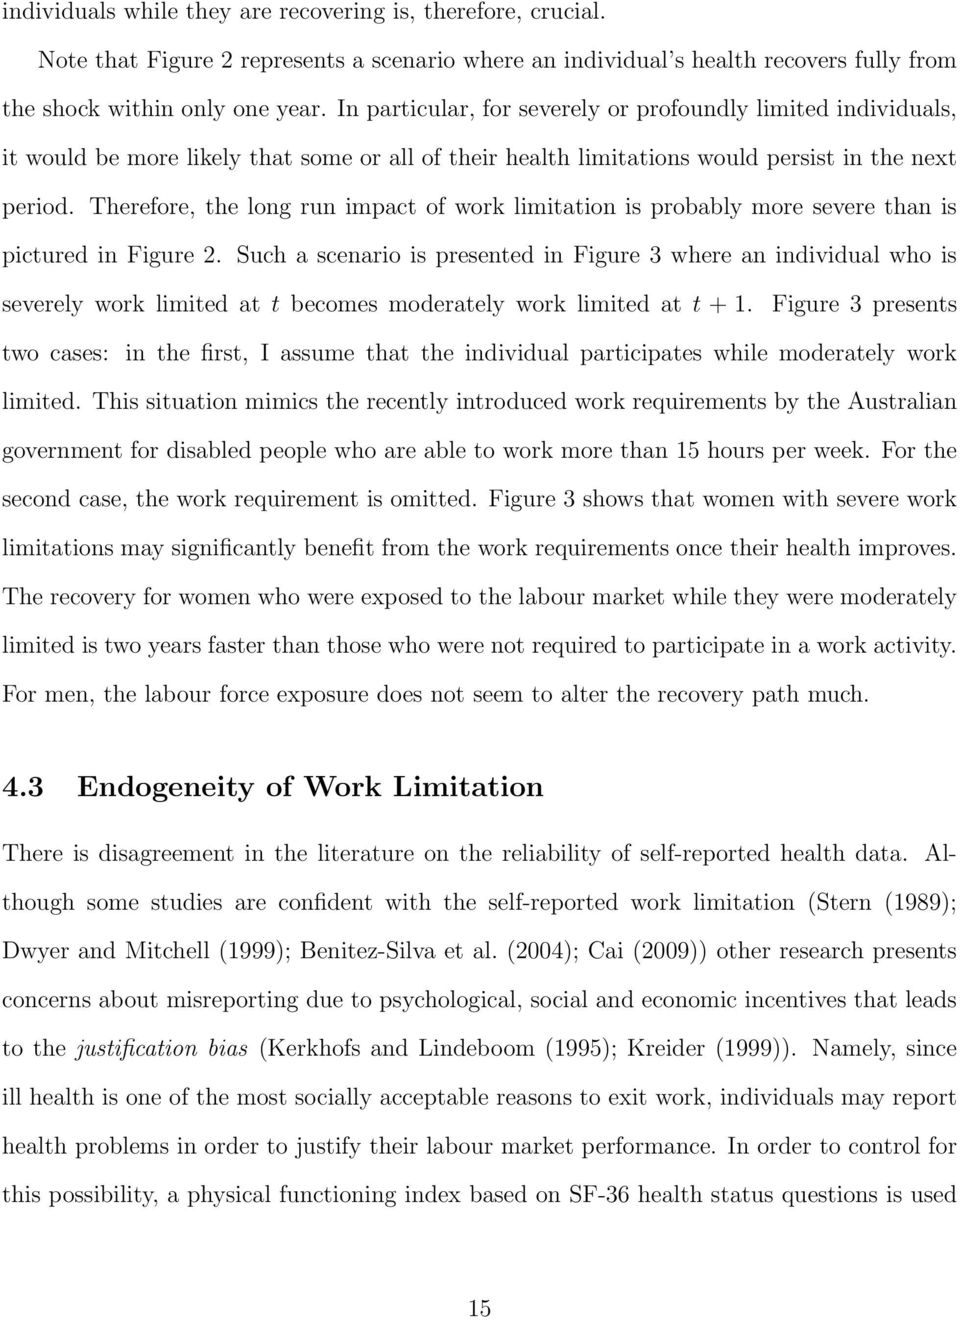 Therefore, the long run impact of work limitation is probably more severe than is pictured in Figure 2.